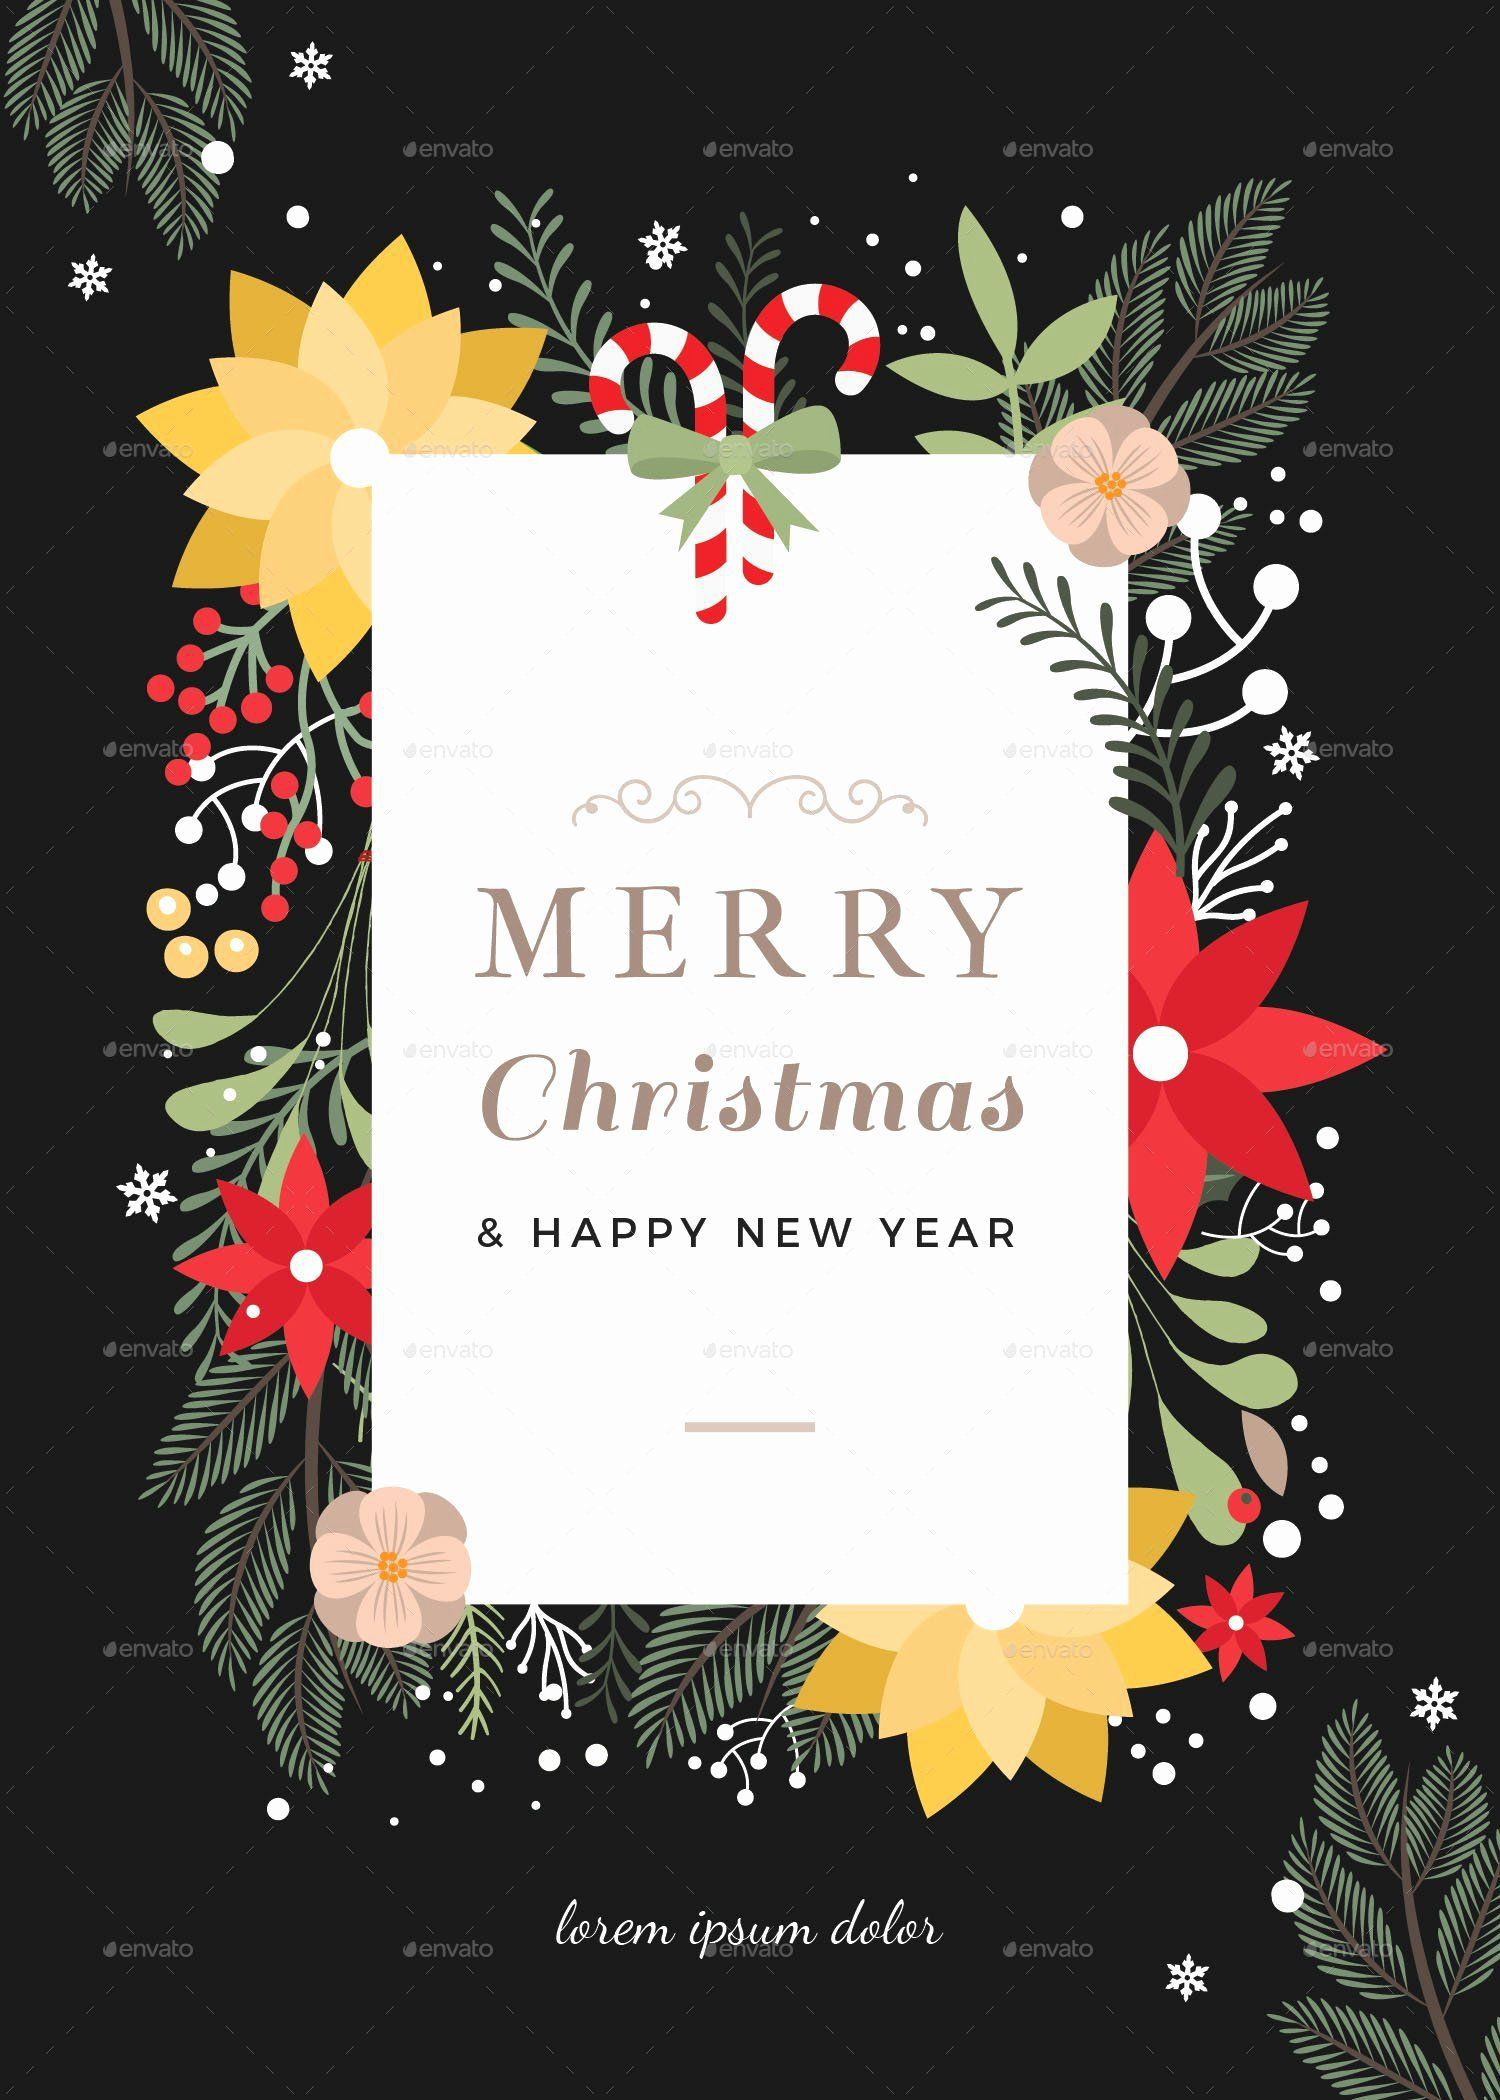 003 Phenomenal Christma Card Template Free Download Photo  Downloads Photoshop EditableFull